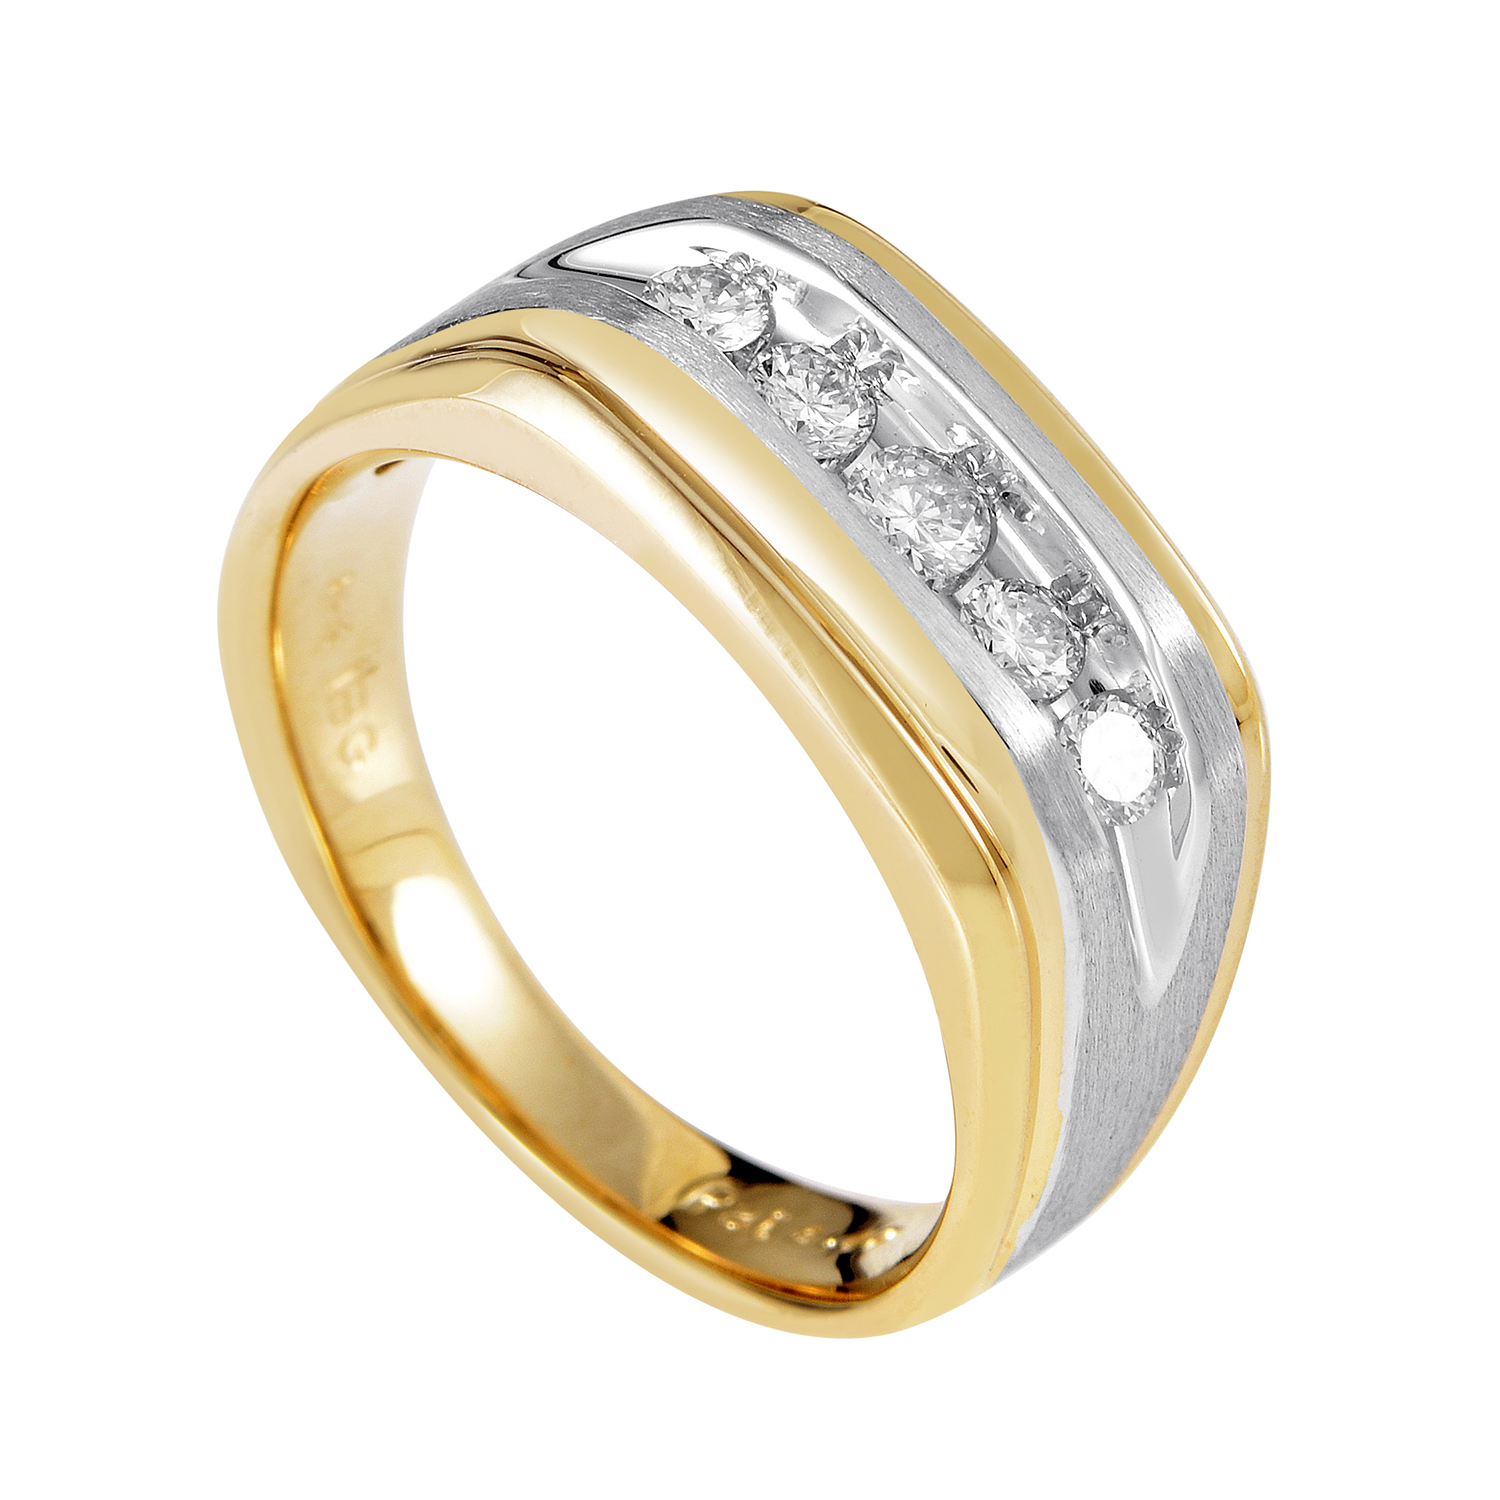 14K Multi-Tone Gold & Diamond Band Ring 63945XGW4X1